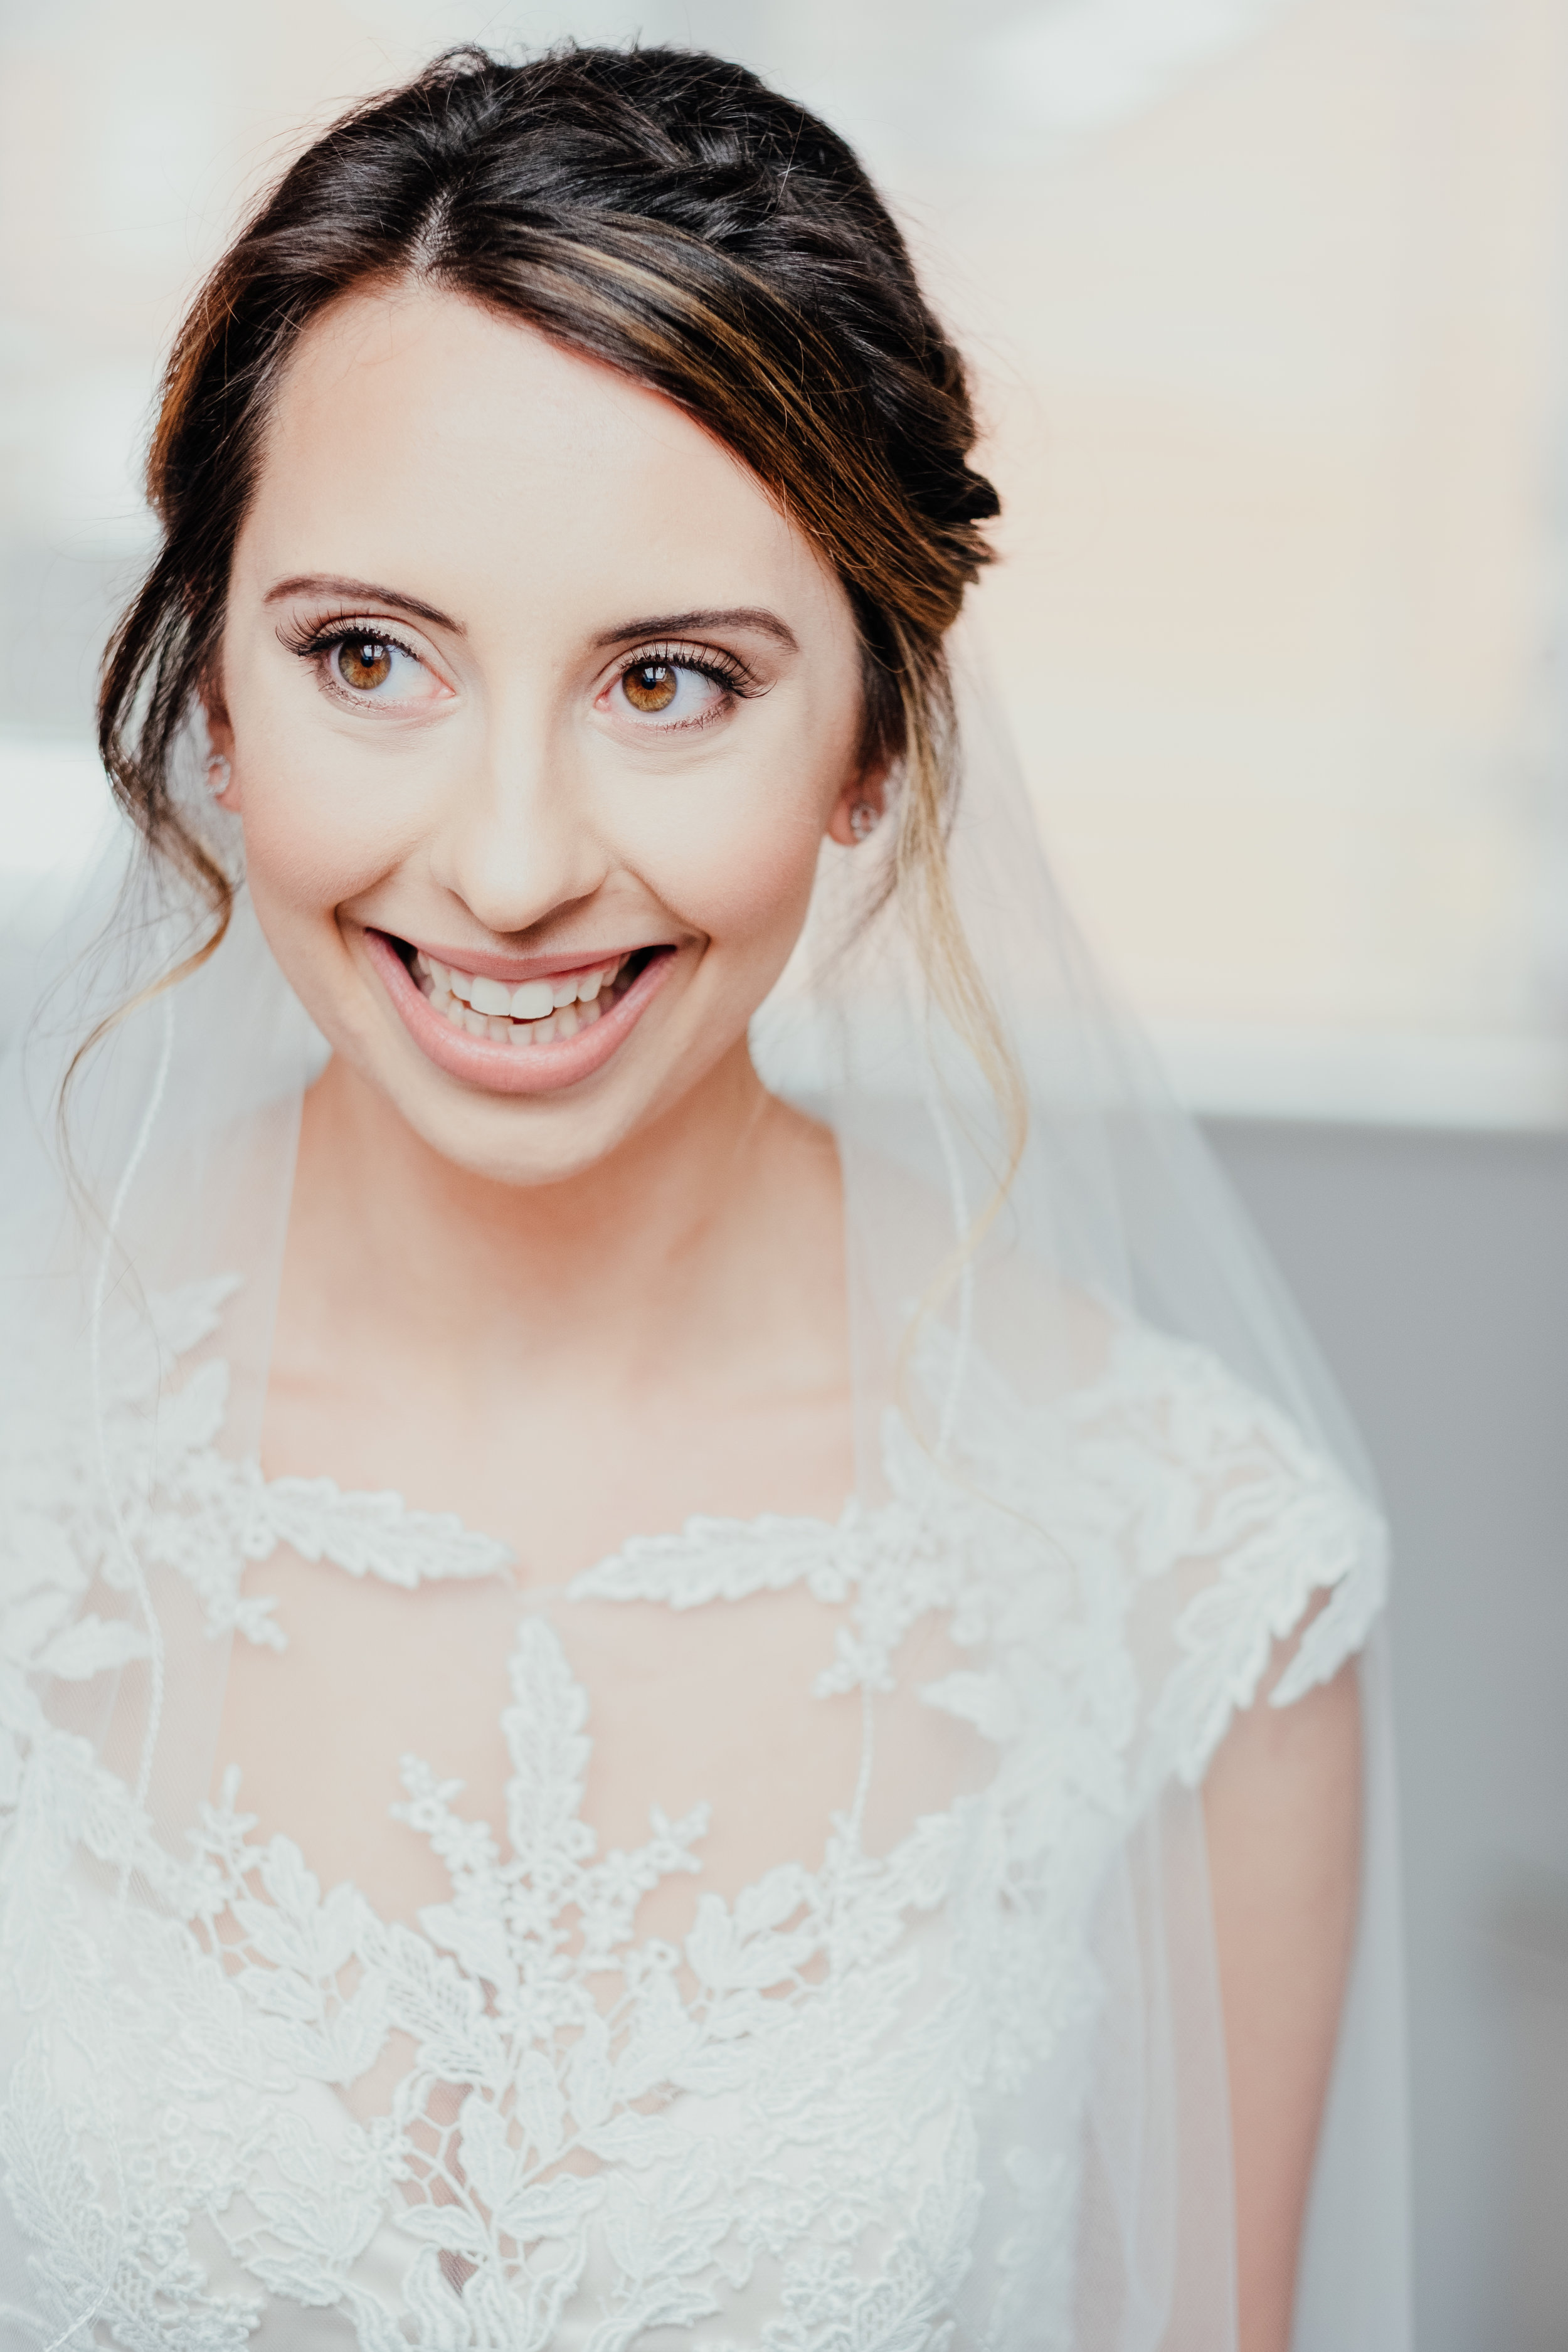 Bride laughing in bridal portrait